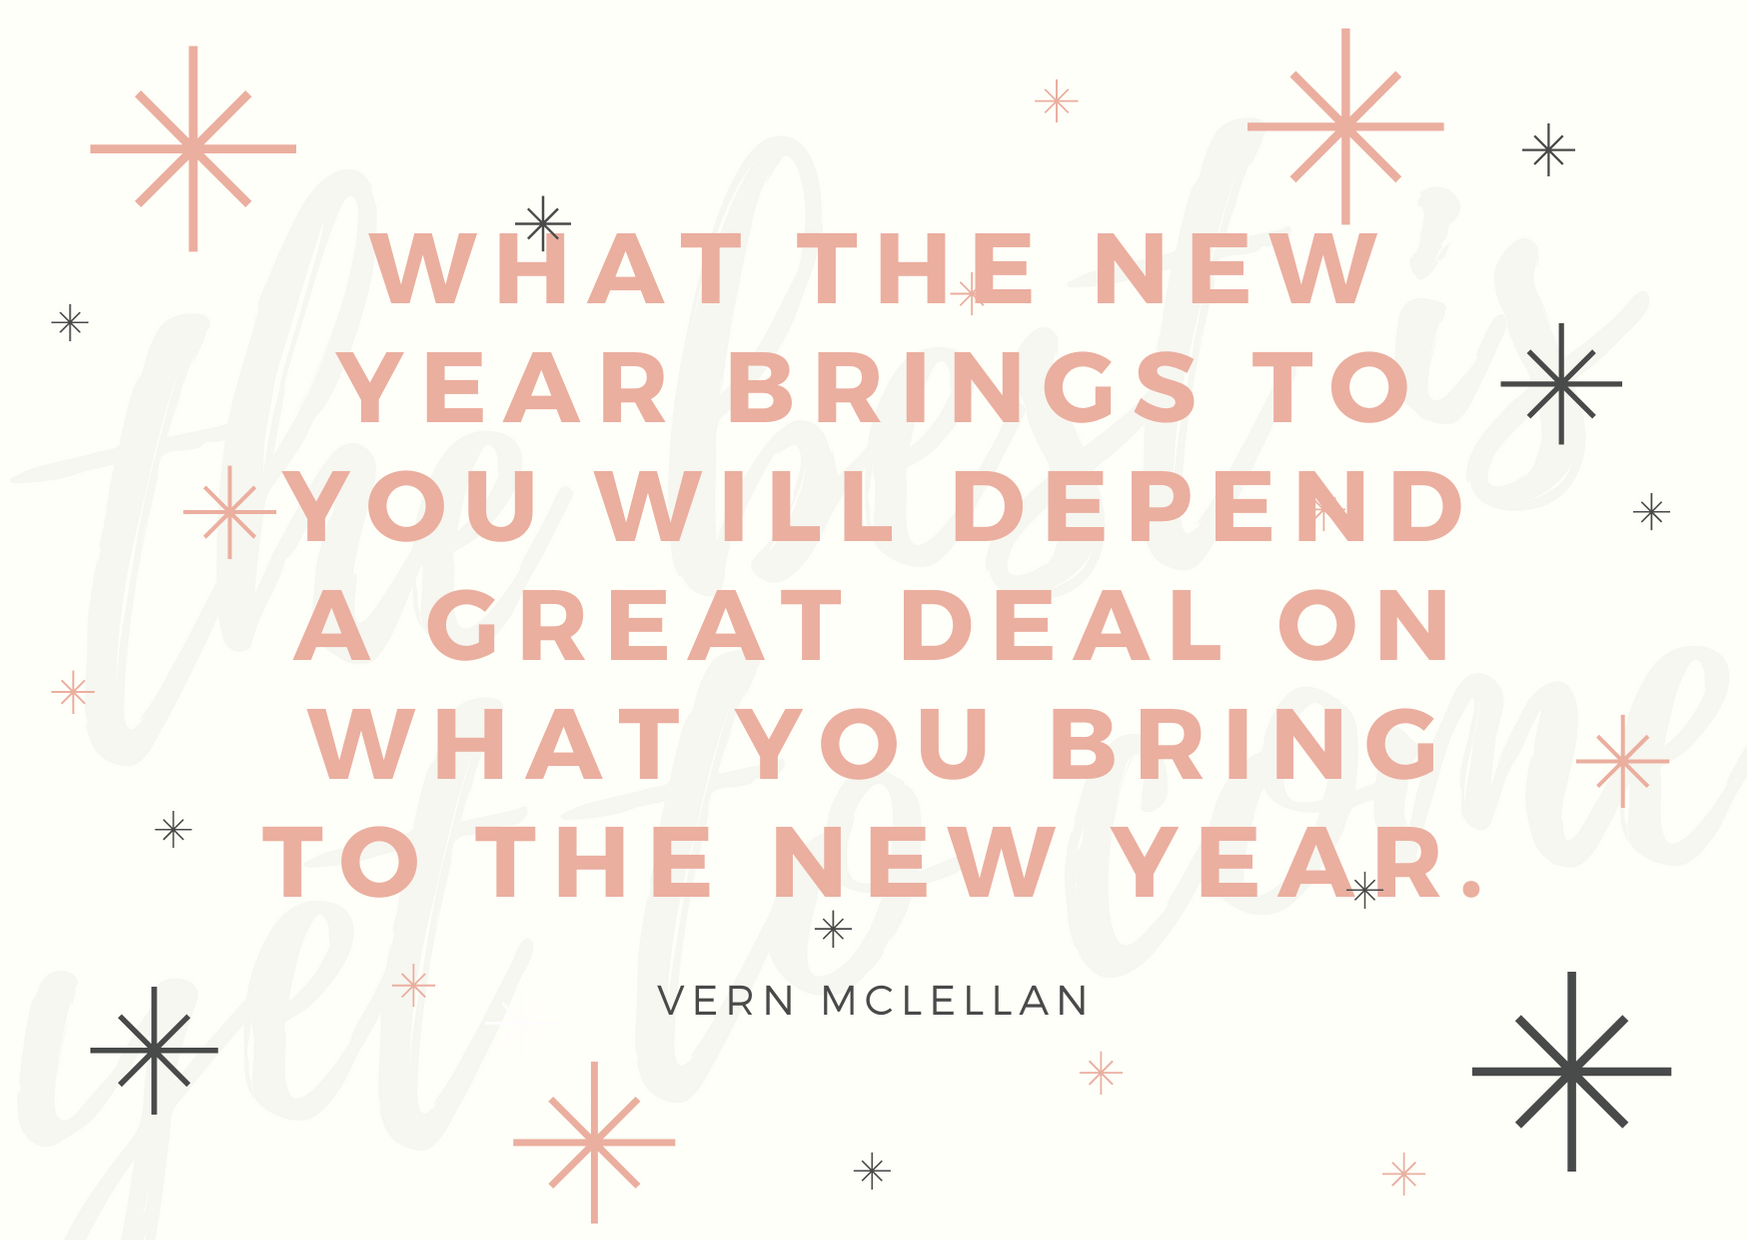 What the new year brings to you will depend a great deal on what you bring to the new year.